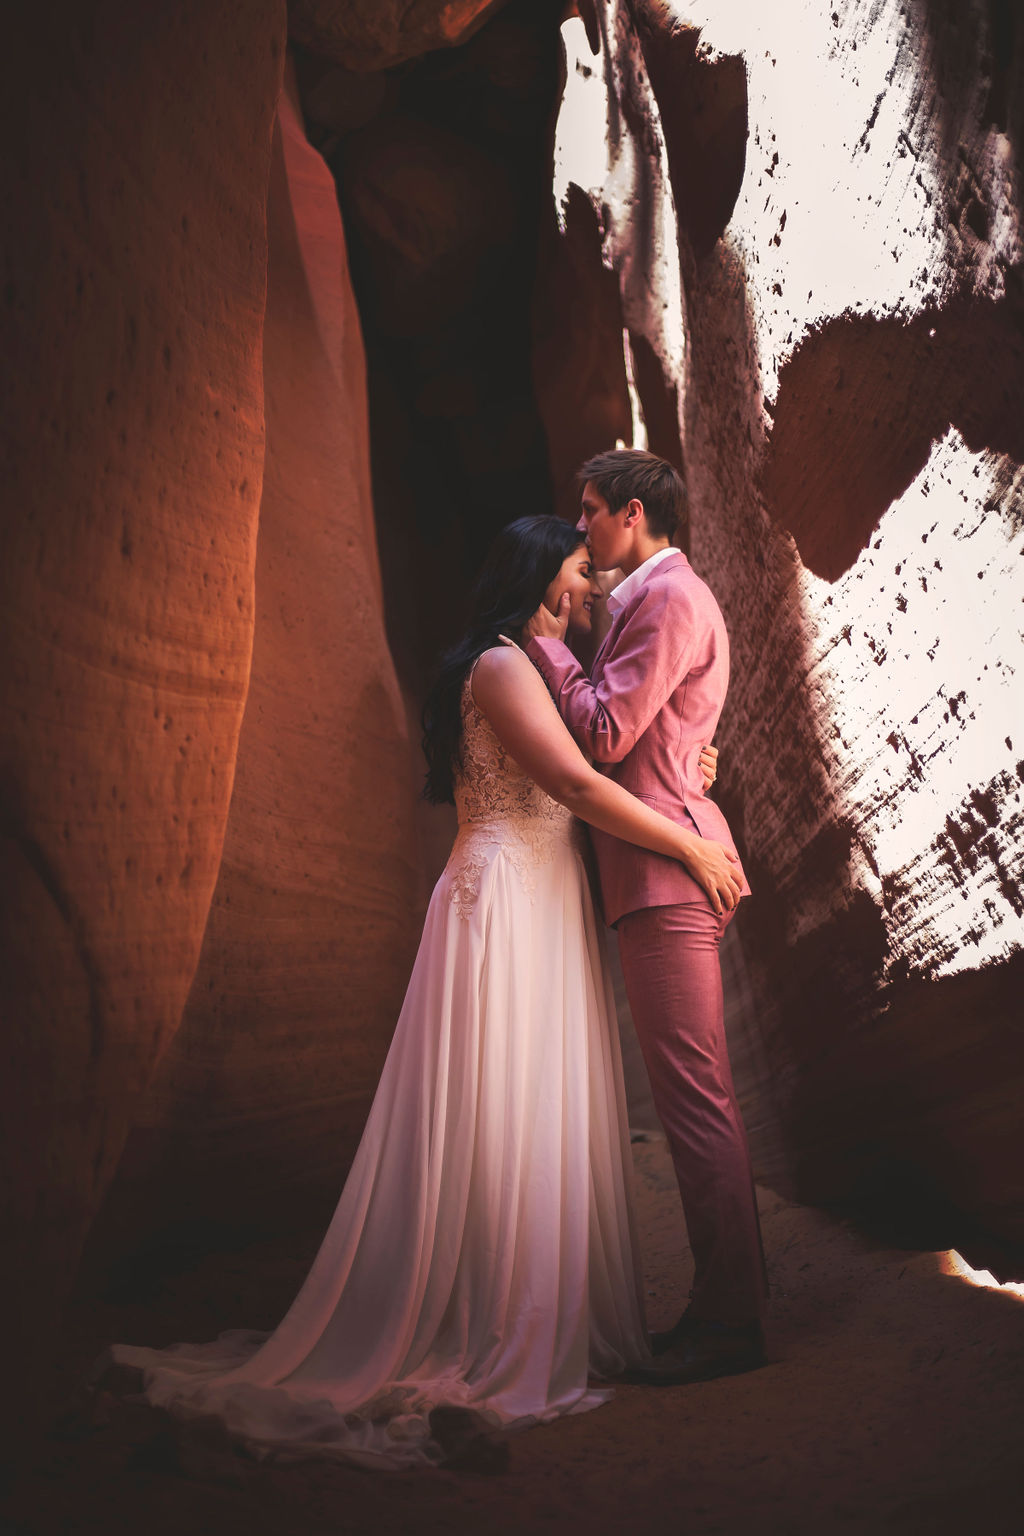 Utah Zion USA Mallory Lane Photography desert lesbian gay same-sex covid-19 pandemic elopement Dancing With Her (1)